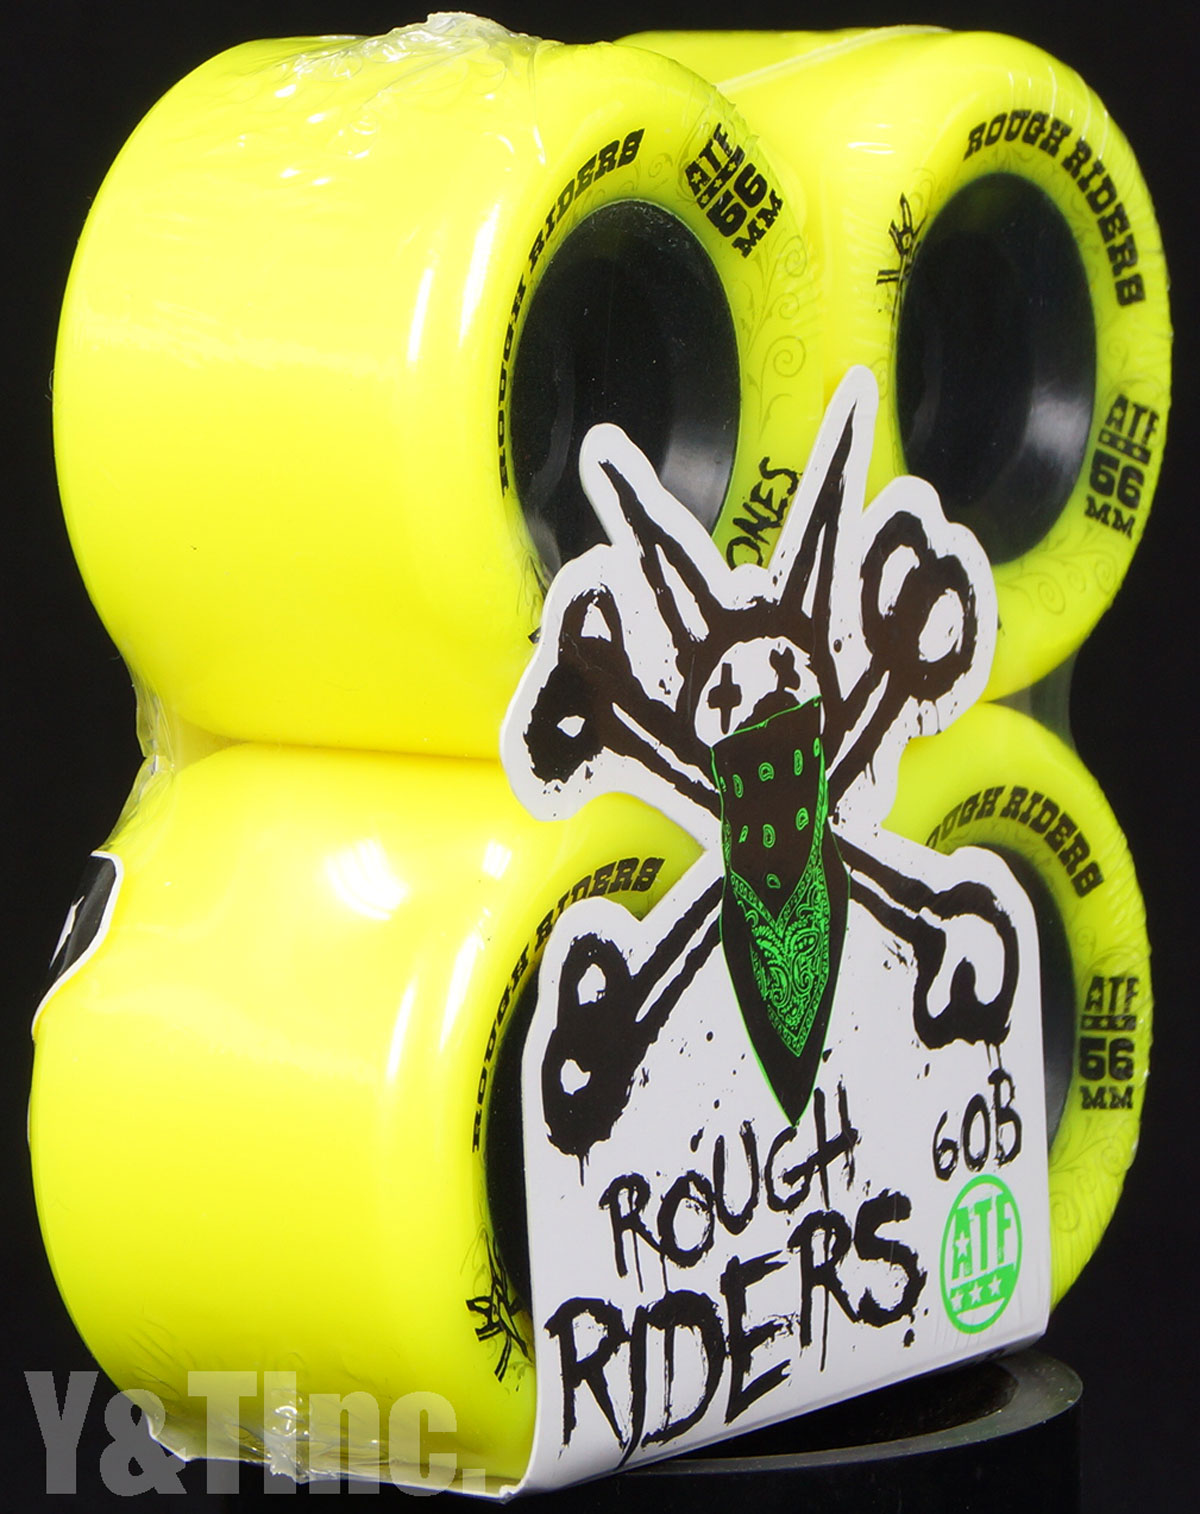 BONES ATF ROUGH RIDERS 56mm 80a Yellow 2